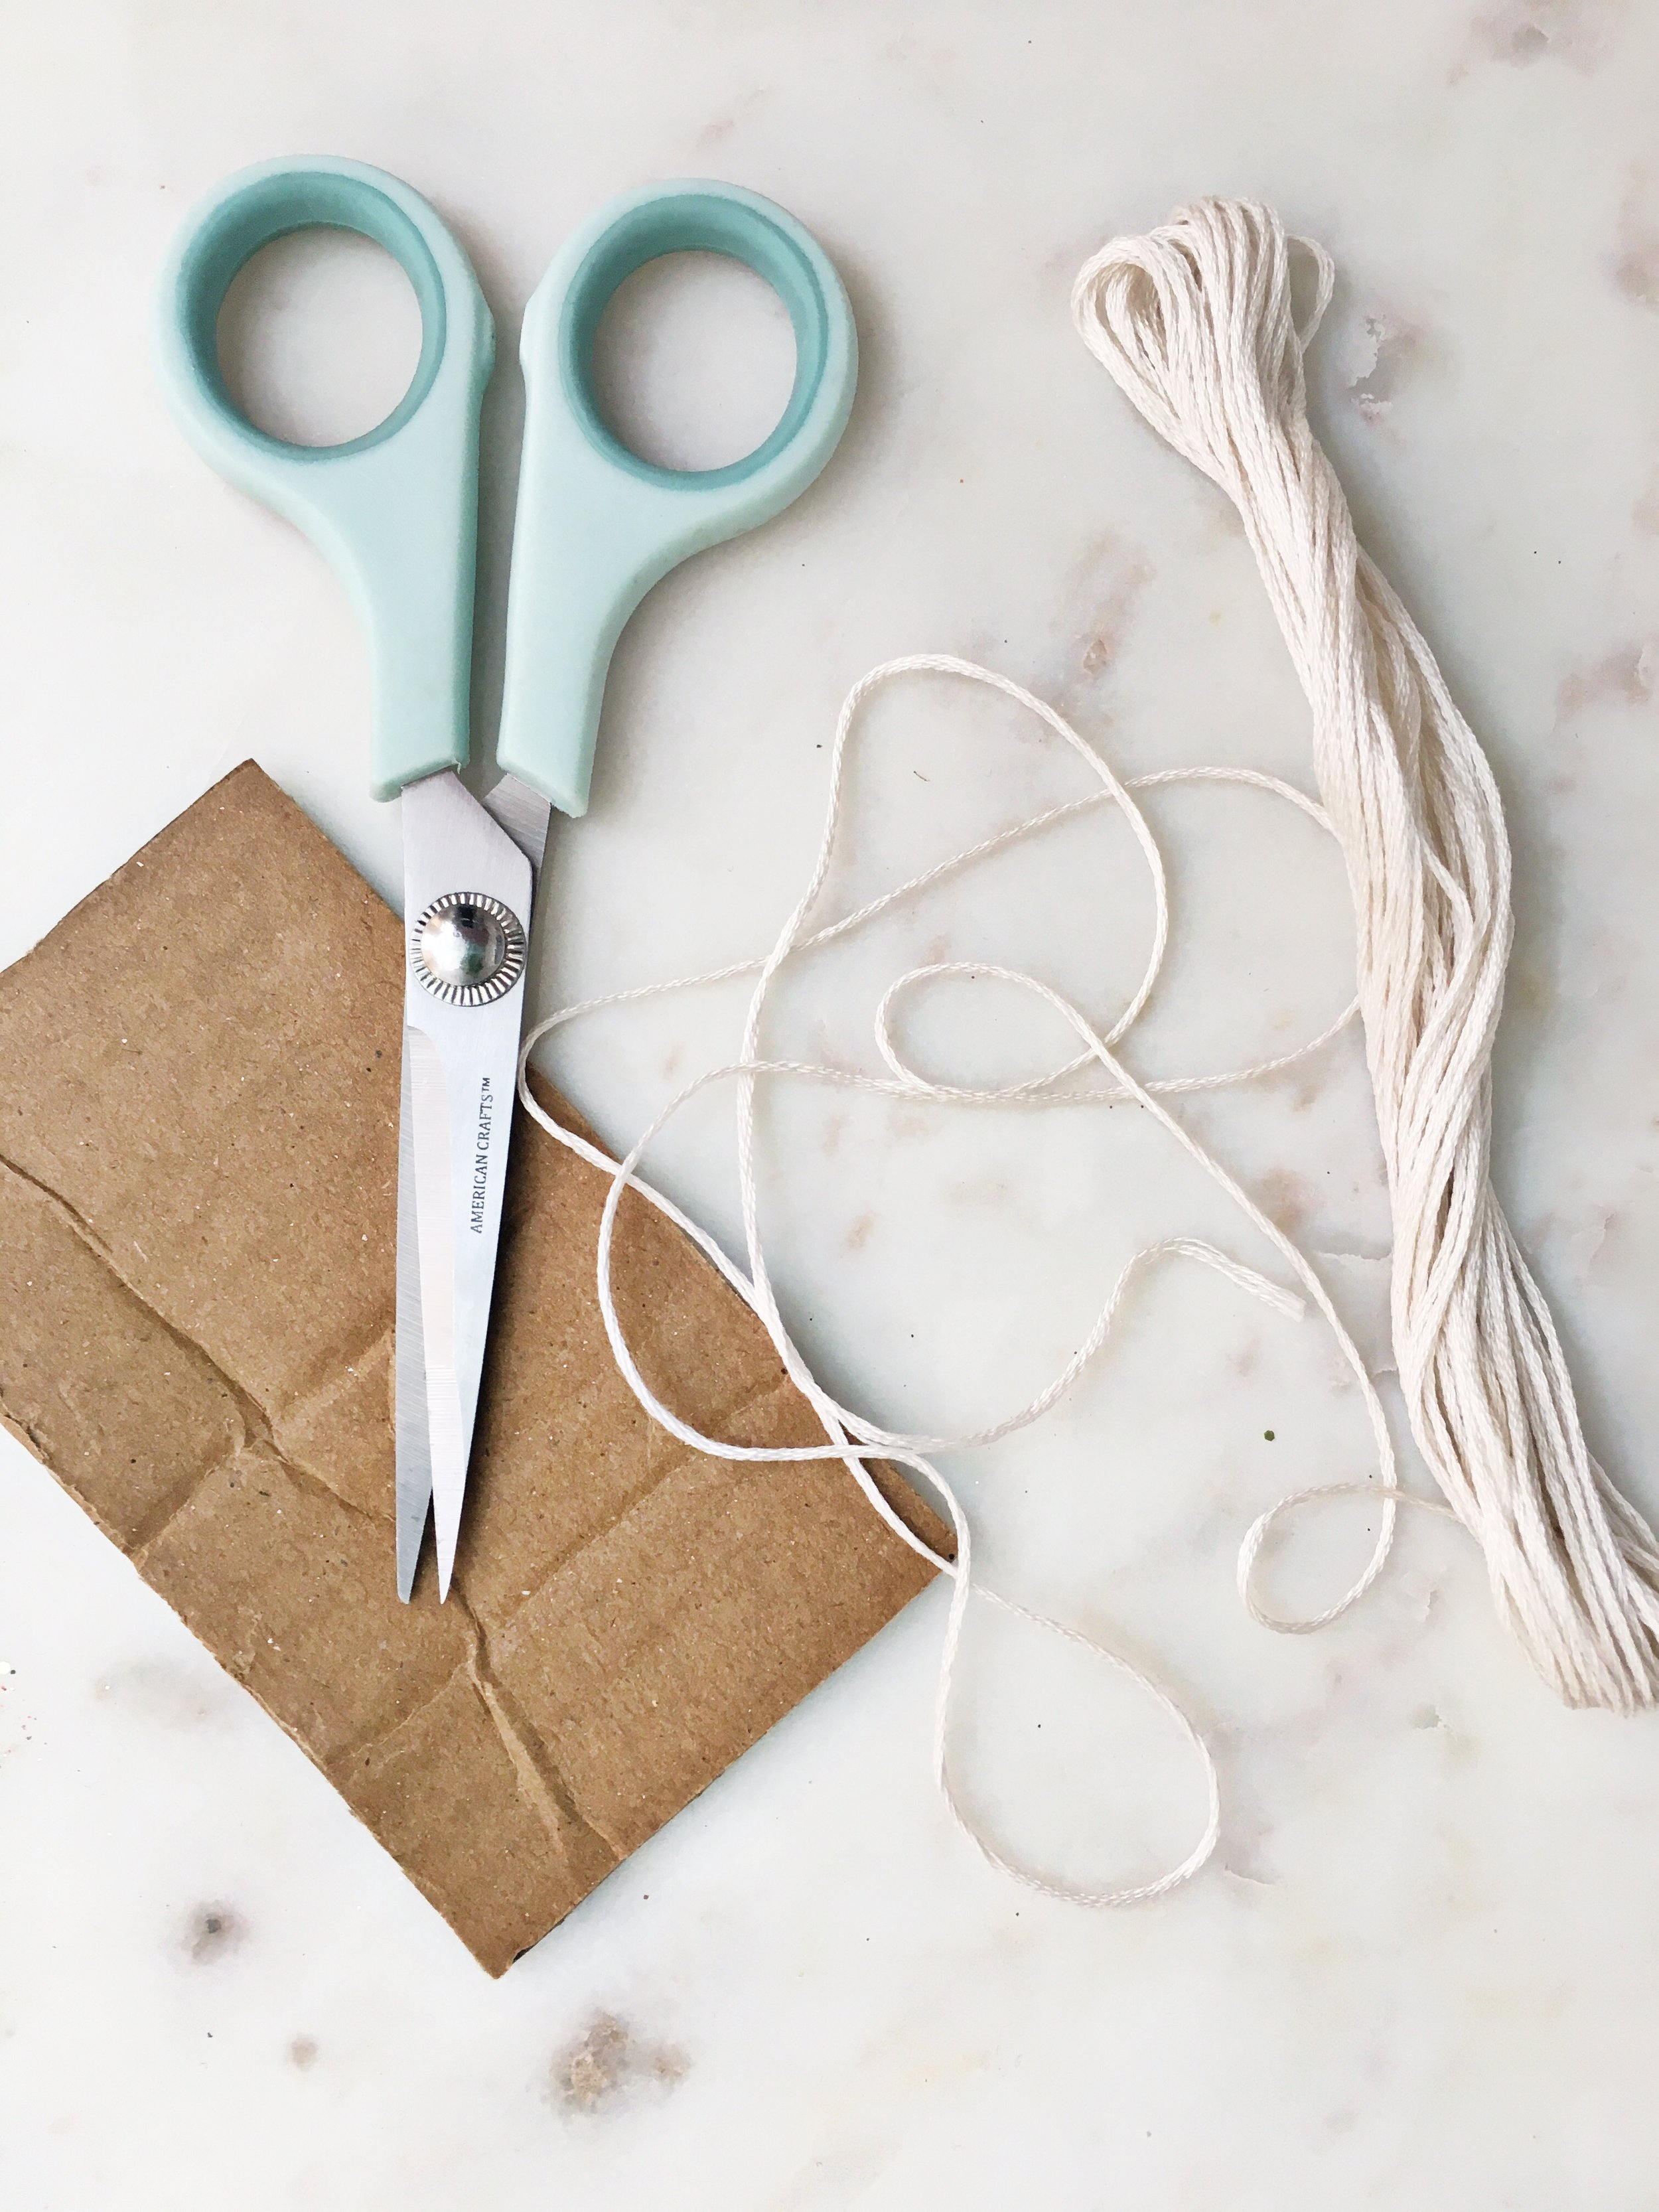 STEP THREE - To make the tassels you will wrap the embroidery thread around the scrap cardboard, cut to approx. 2